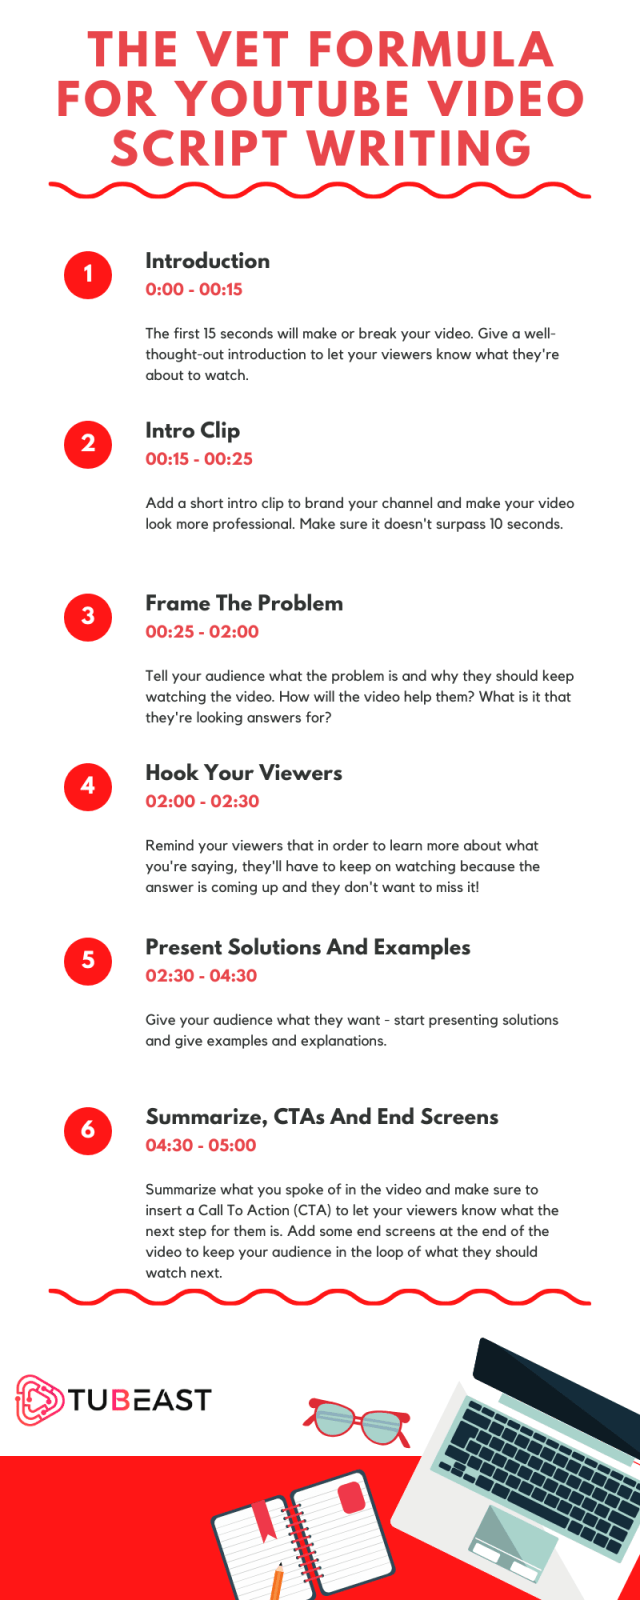 How To Write A Great YouTube Video Script